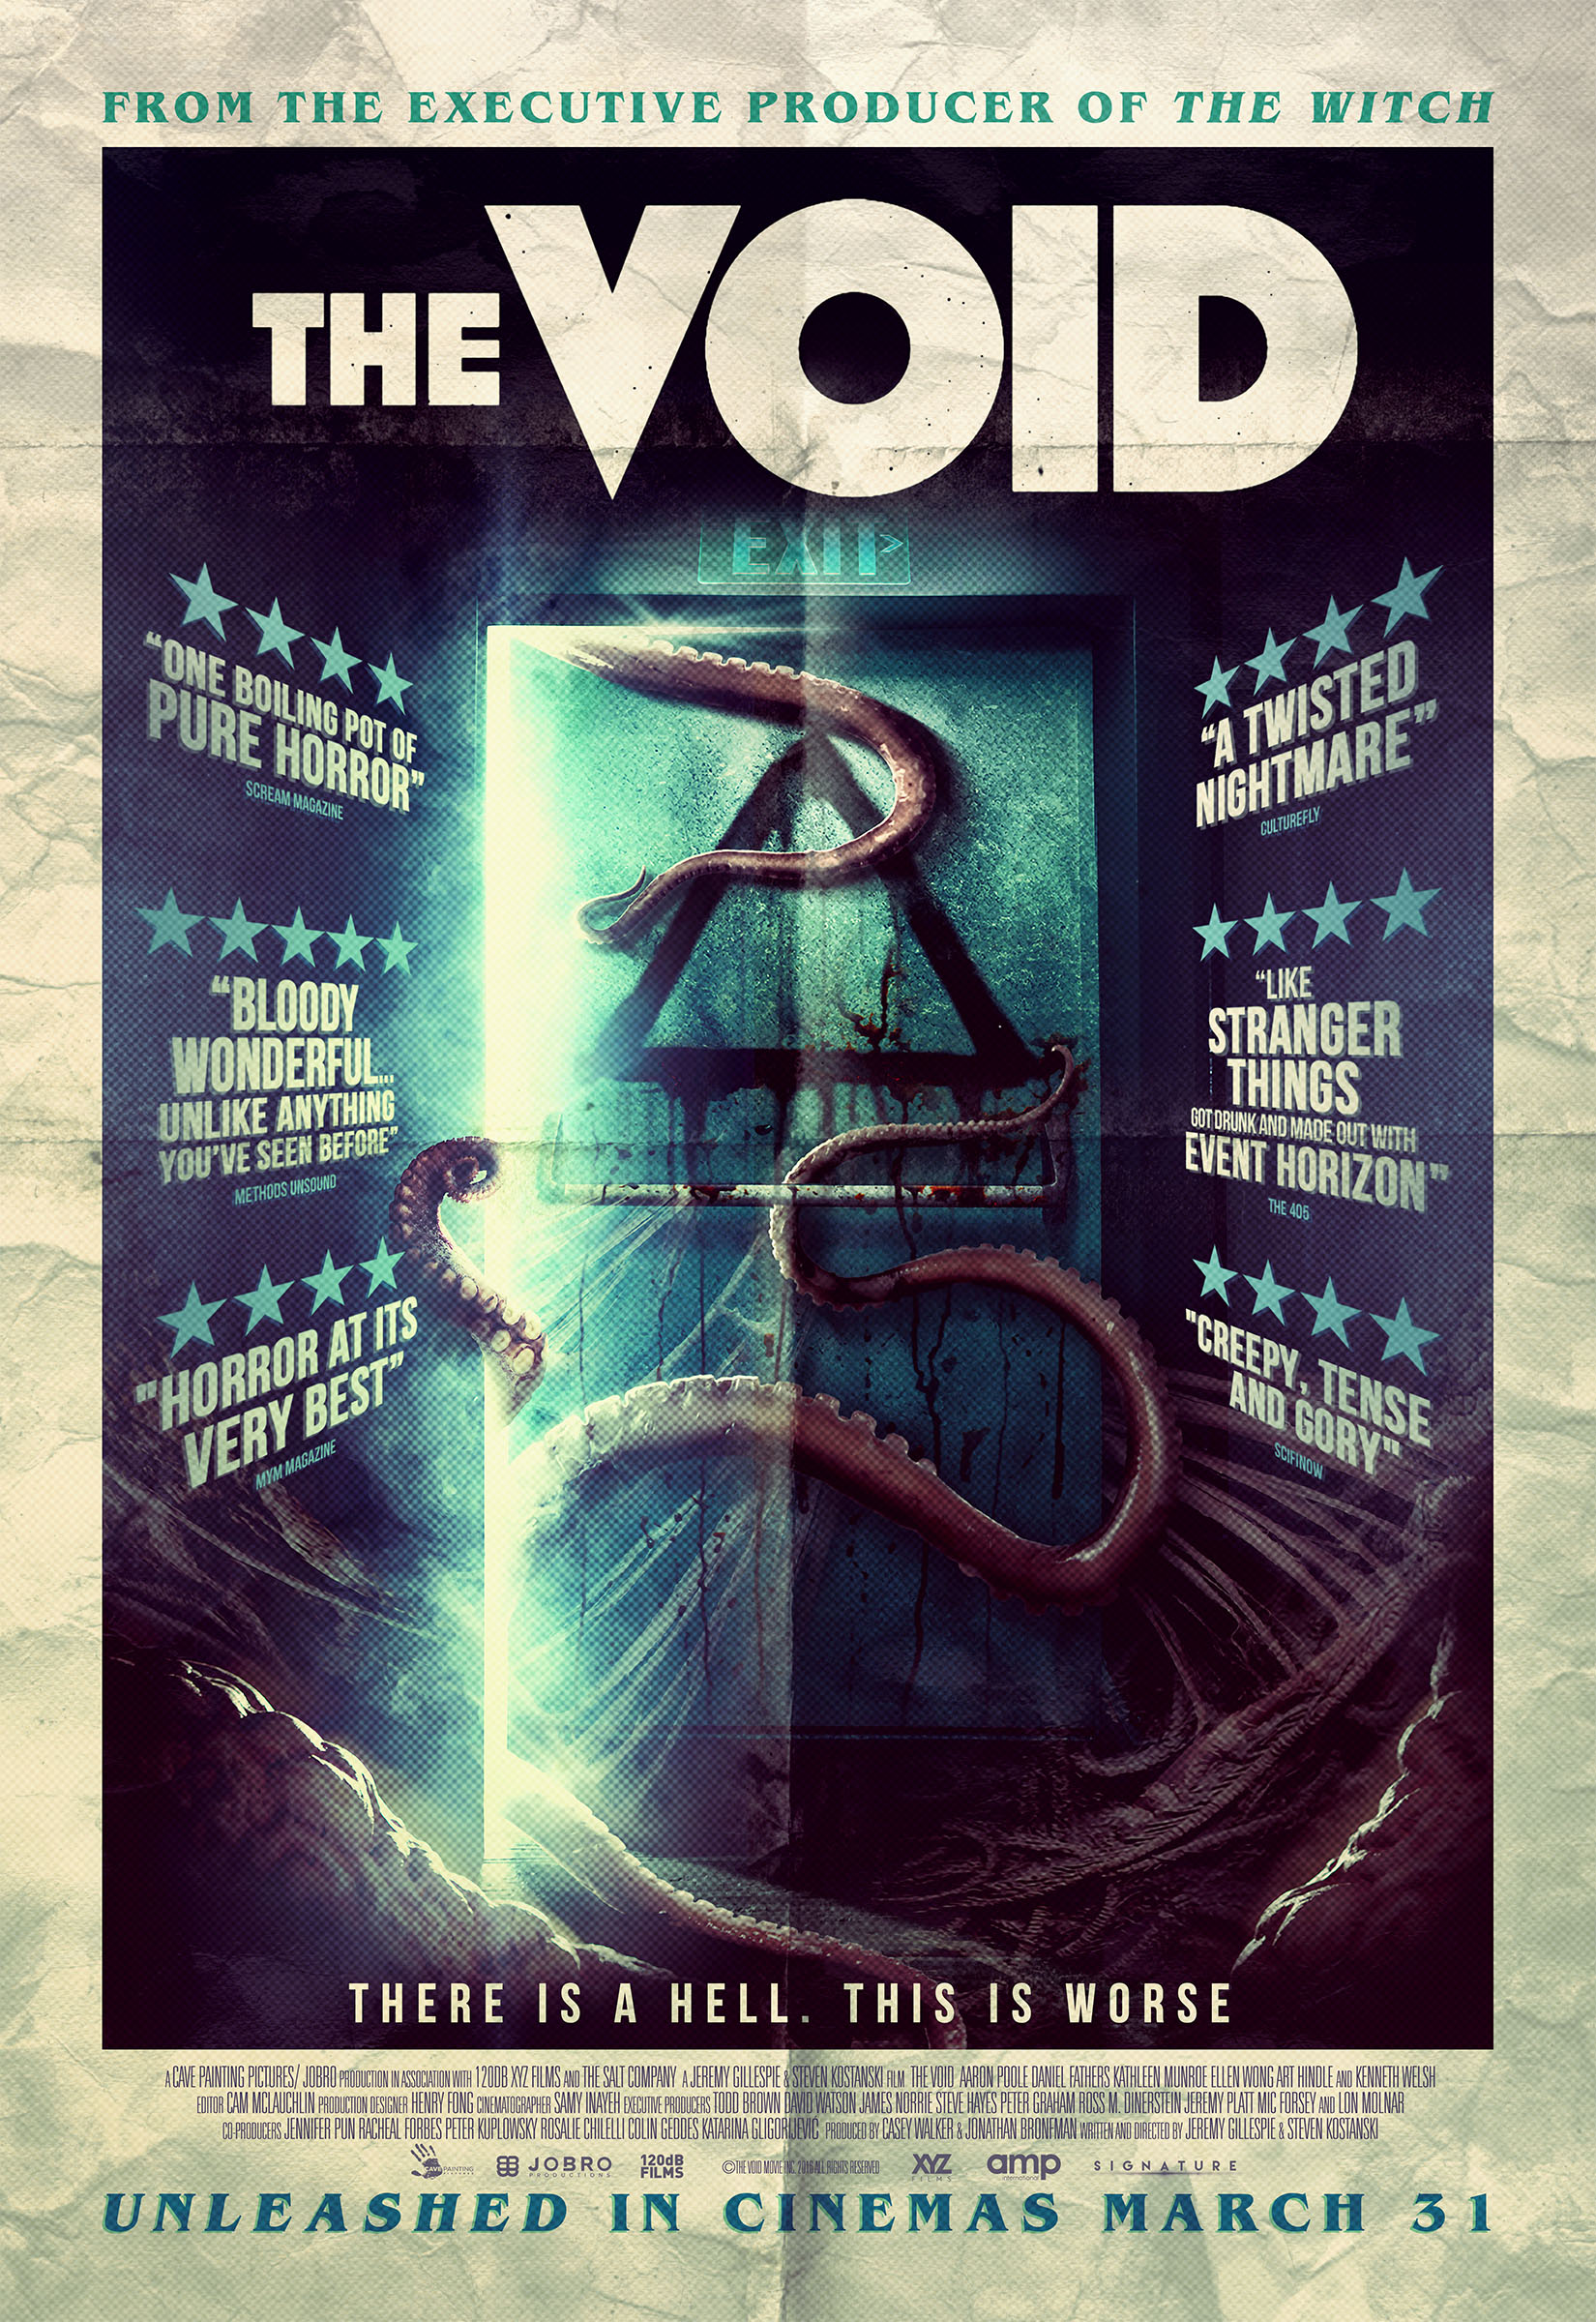 The Void film review: monsters, madness and dread